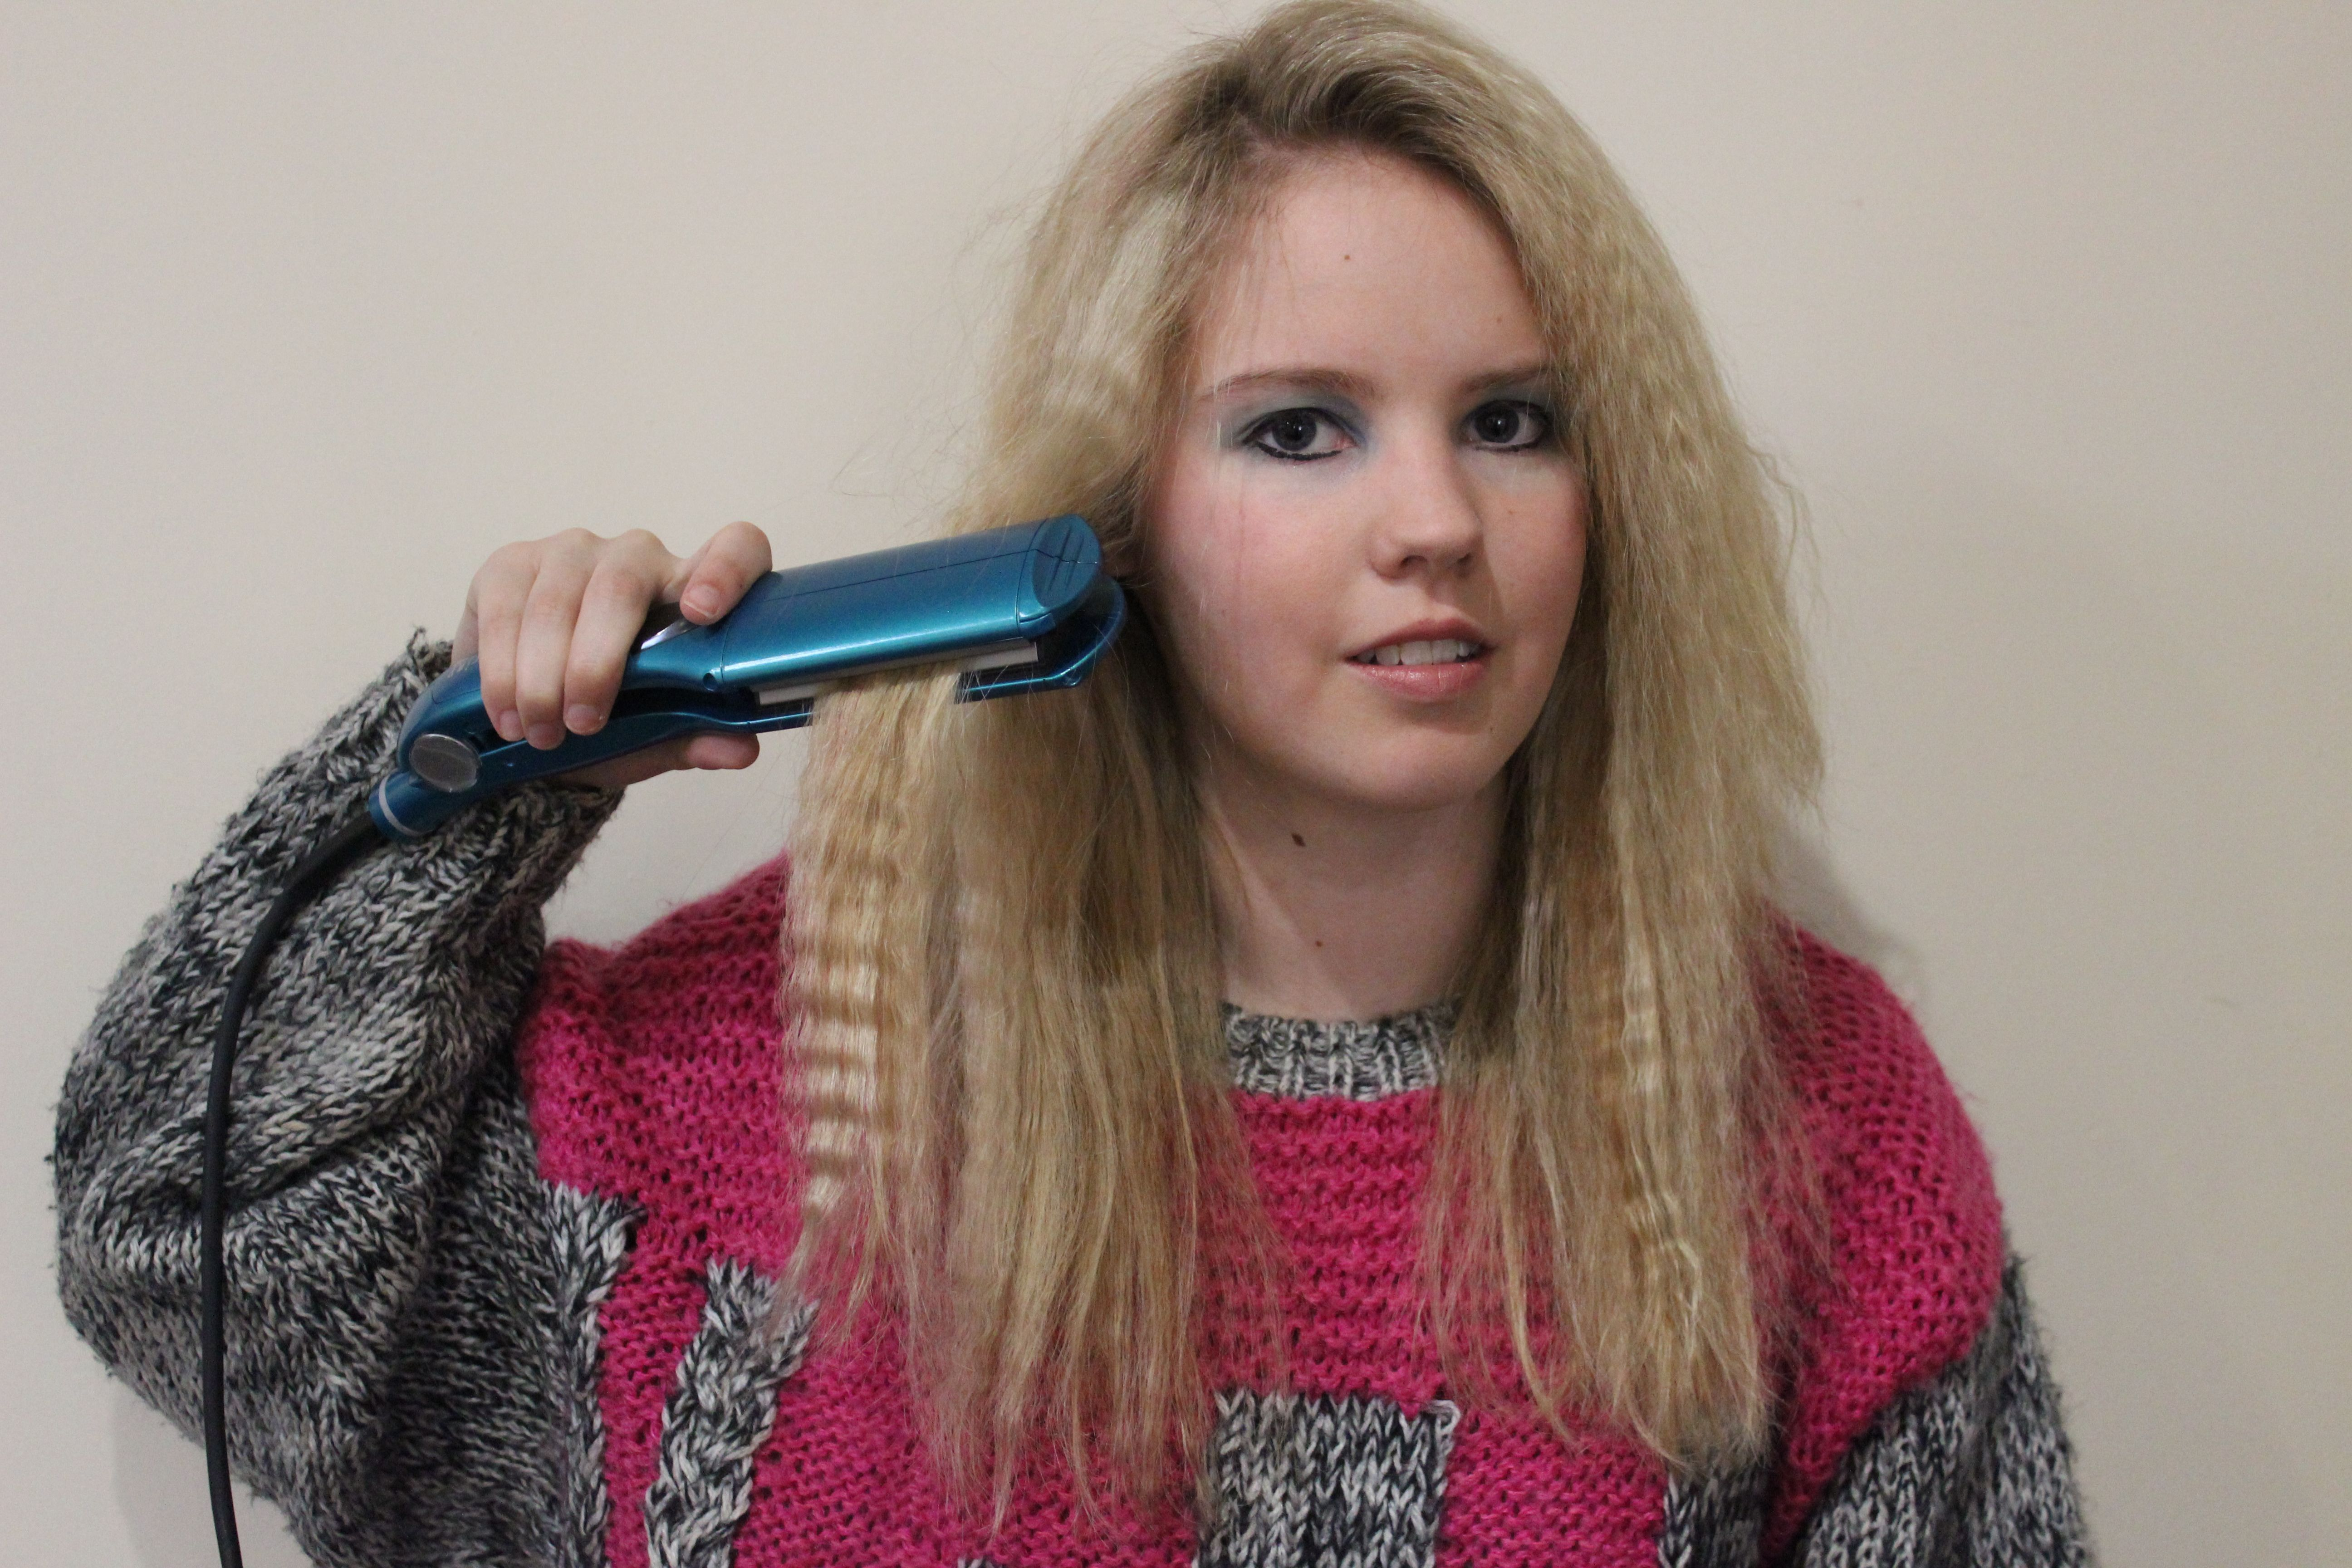 Hair crimping 80s or 90s